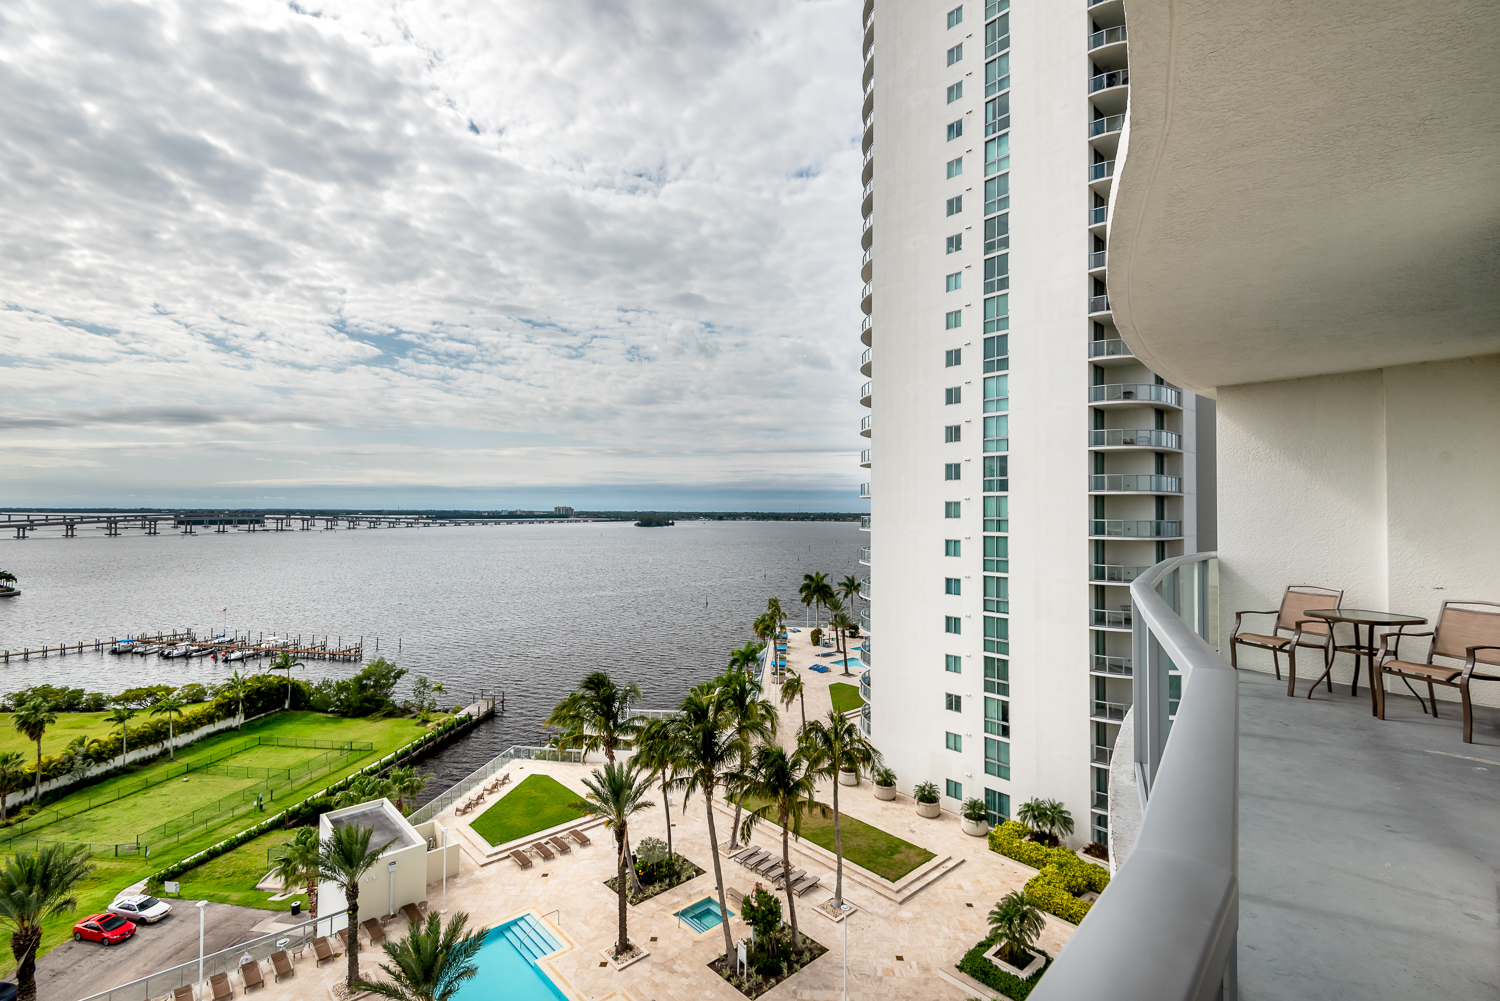 Fort-myers-fl-river-condo-oasis-balcony-river-downtown